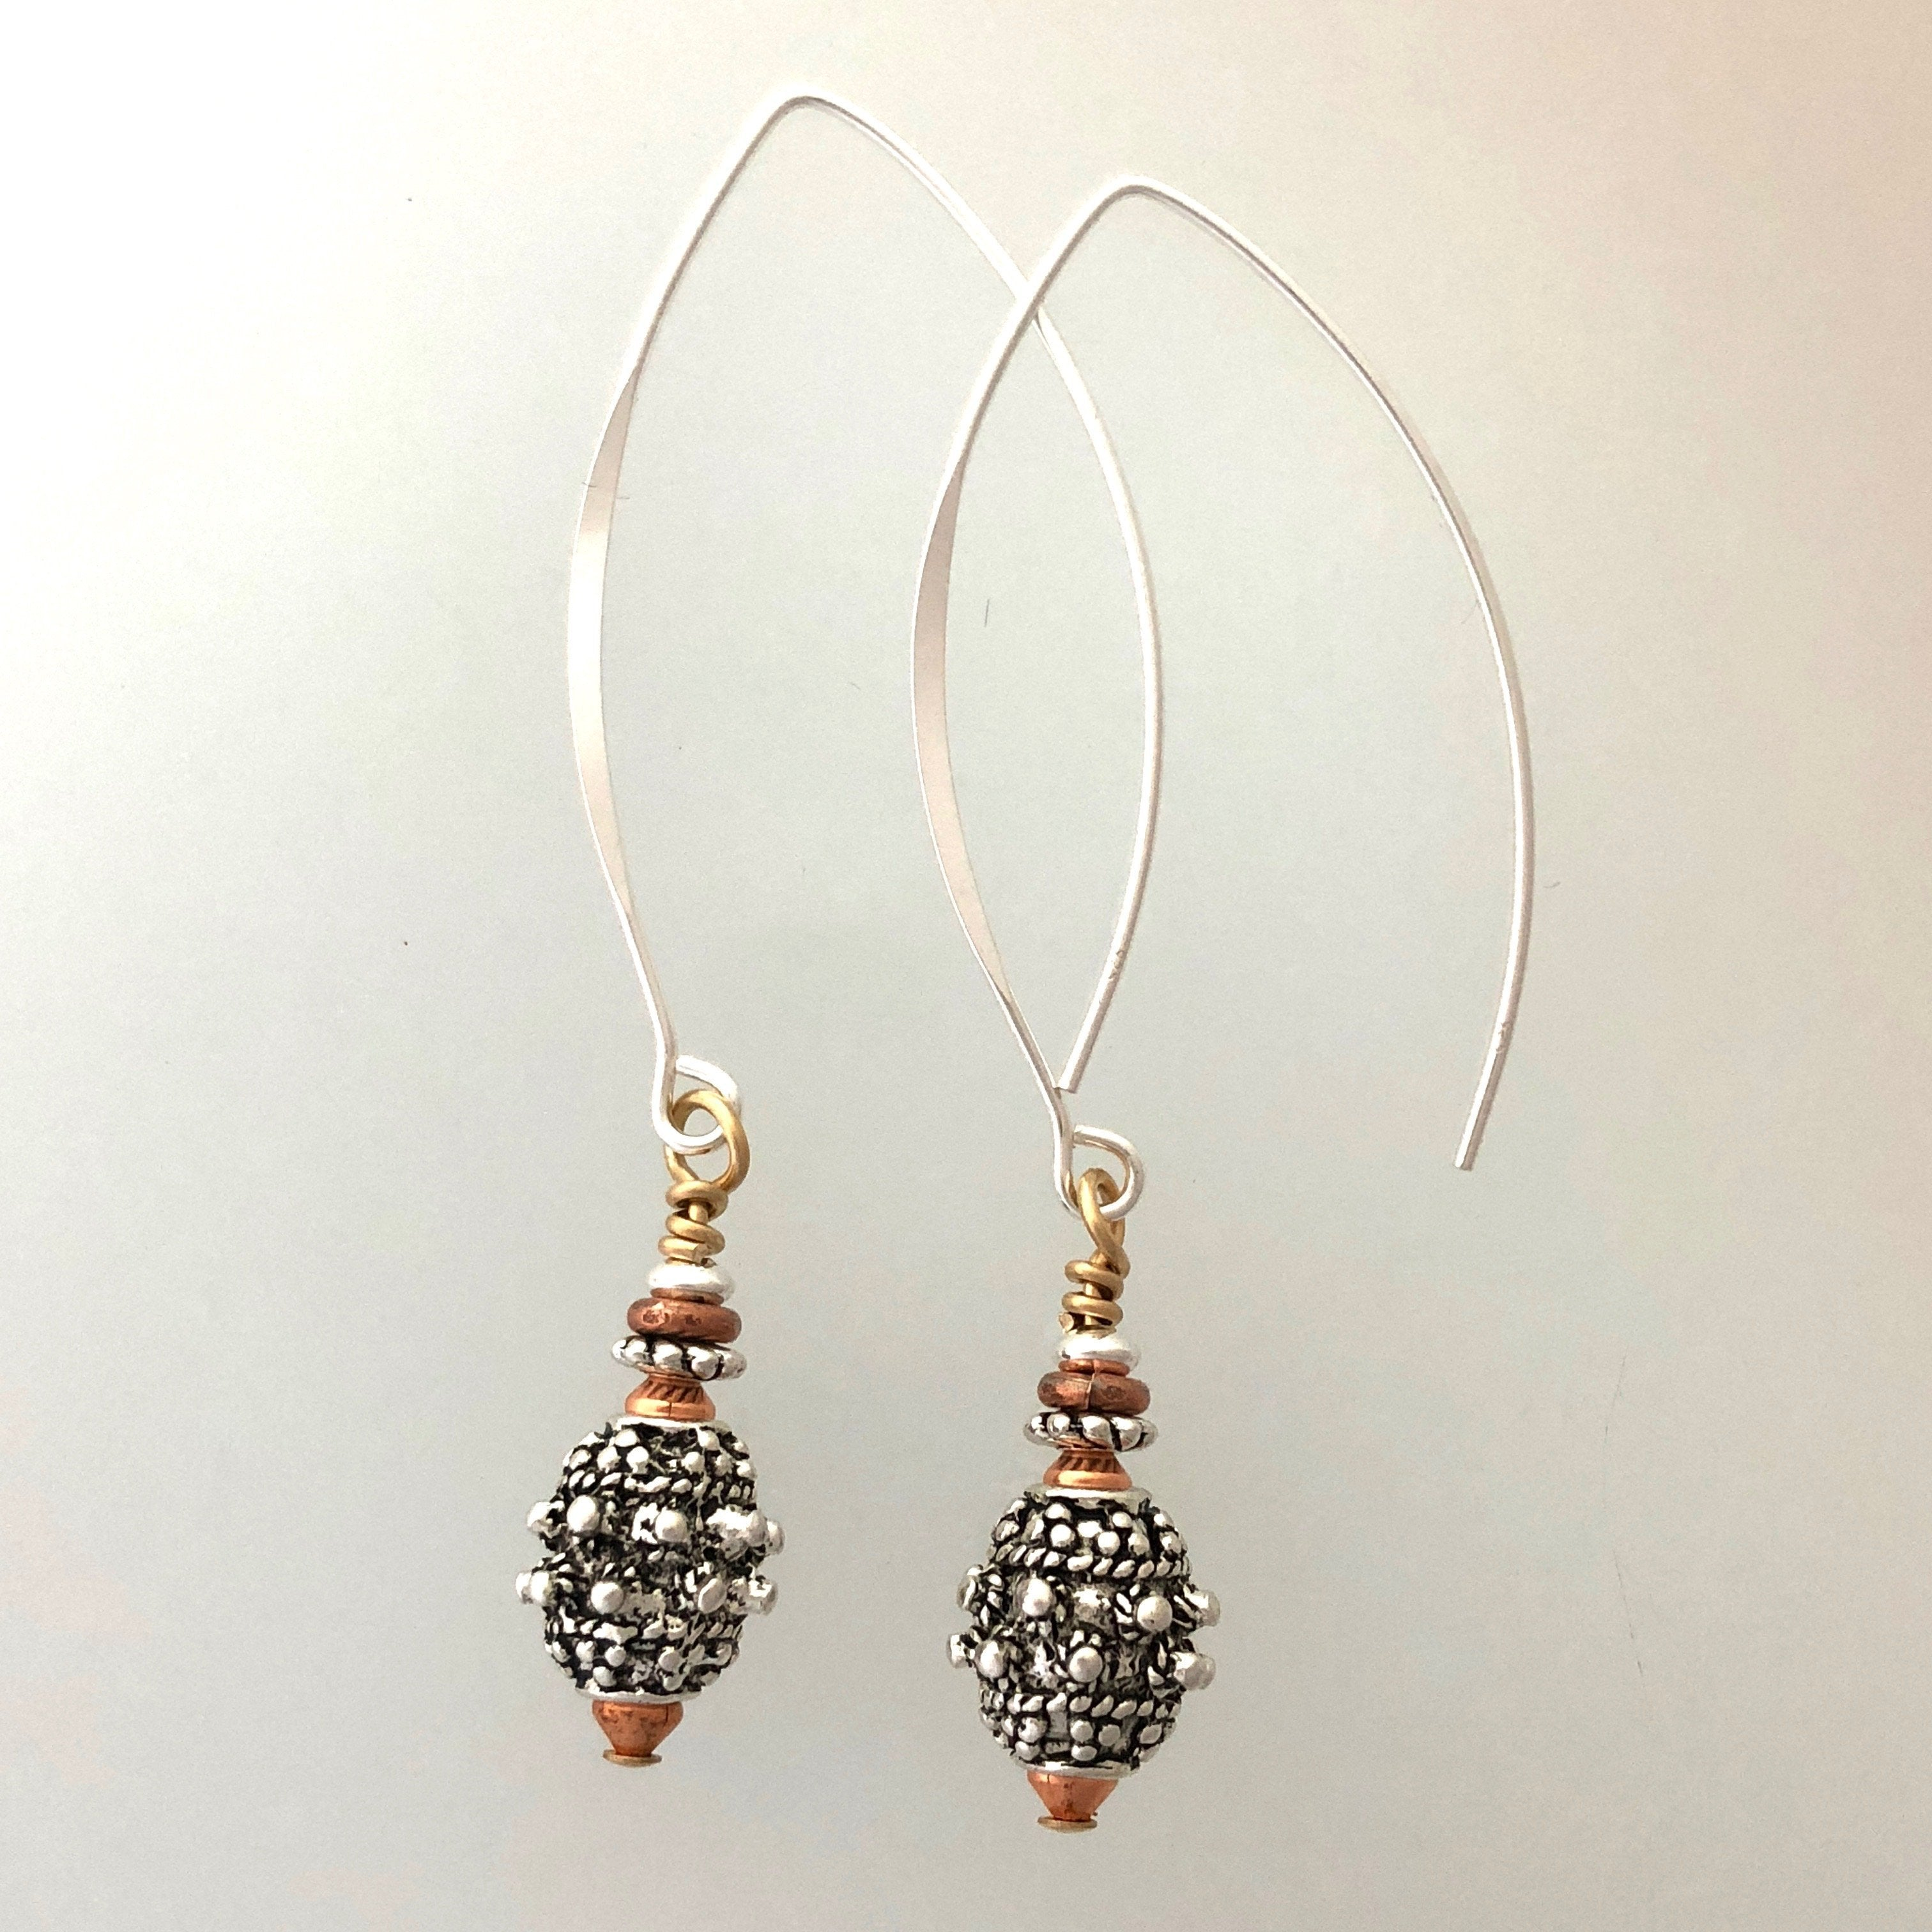 bisbee collection earrings large hooks